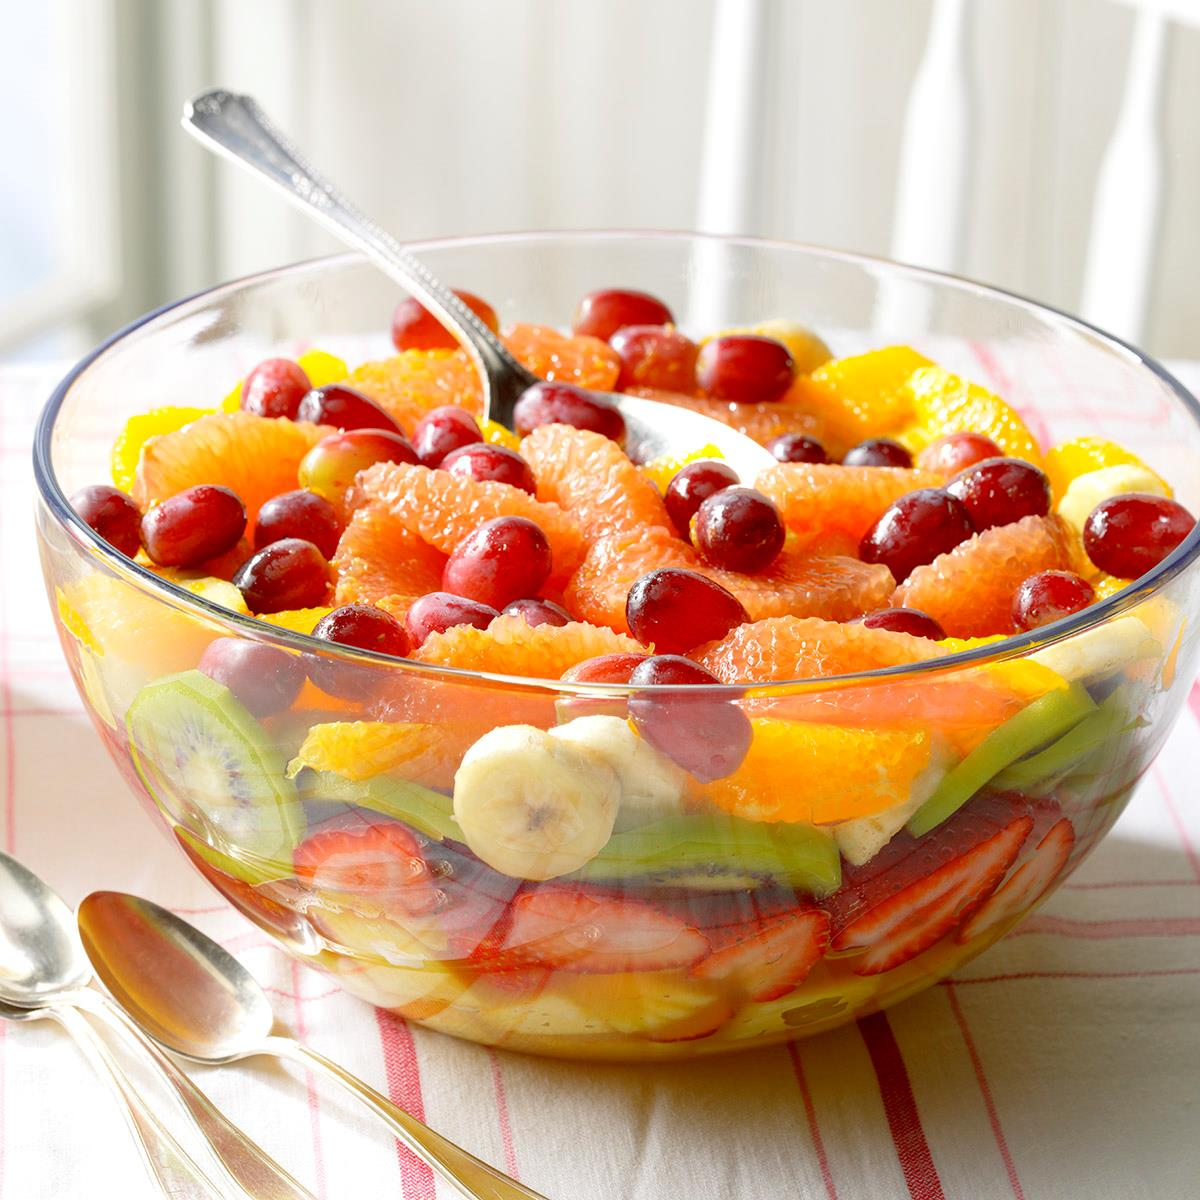 Layered Fresh Fruit Salad Recipe: How to Make It | Taste of Home